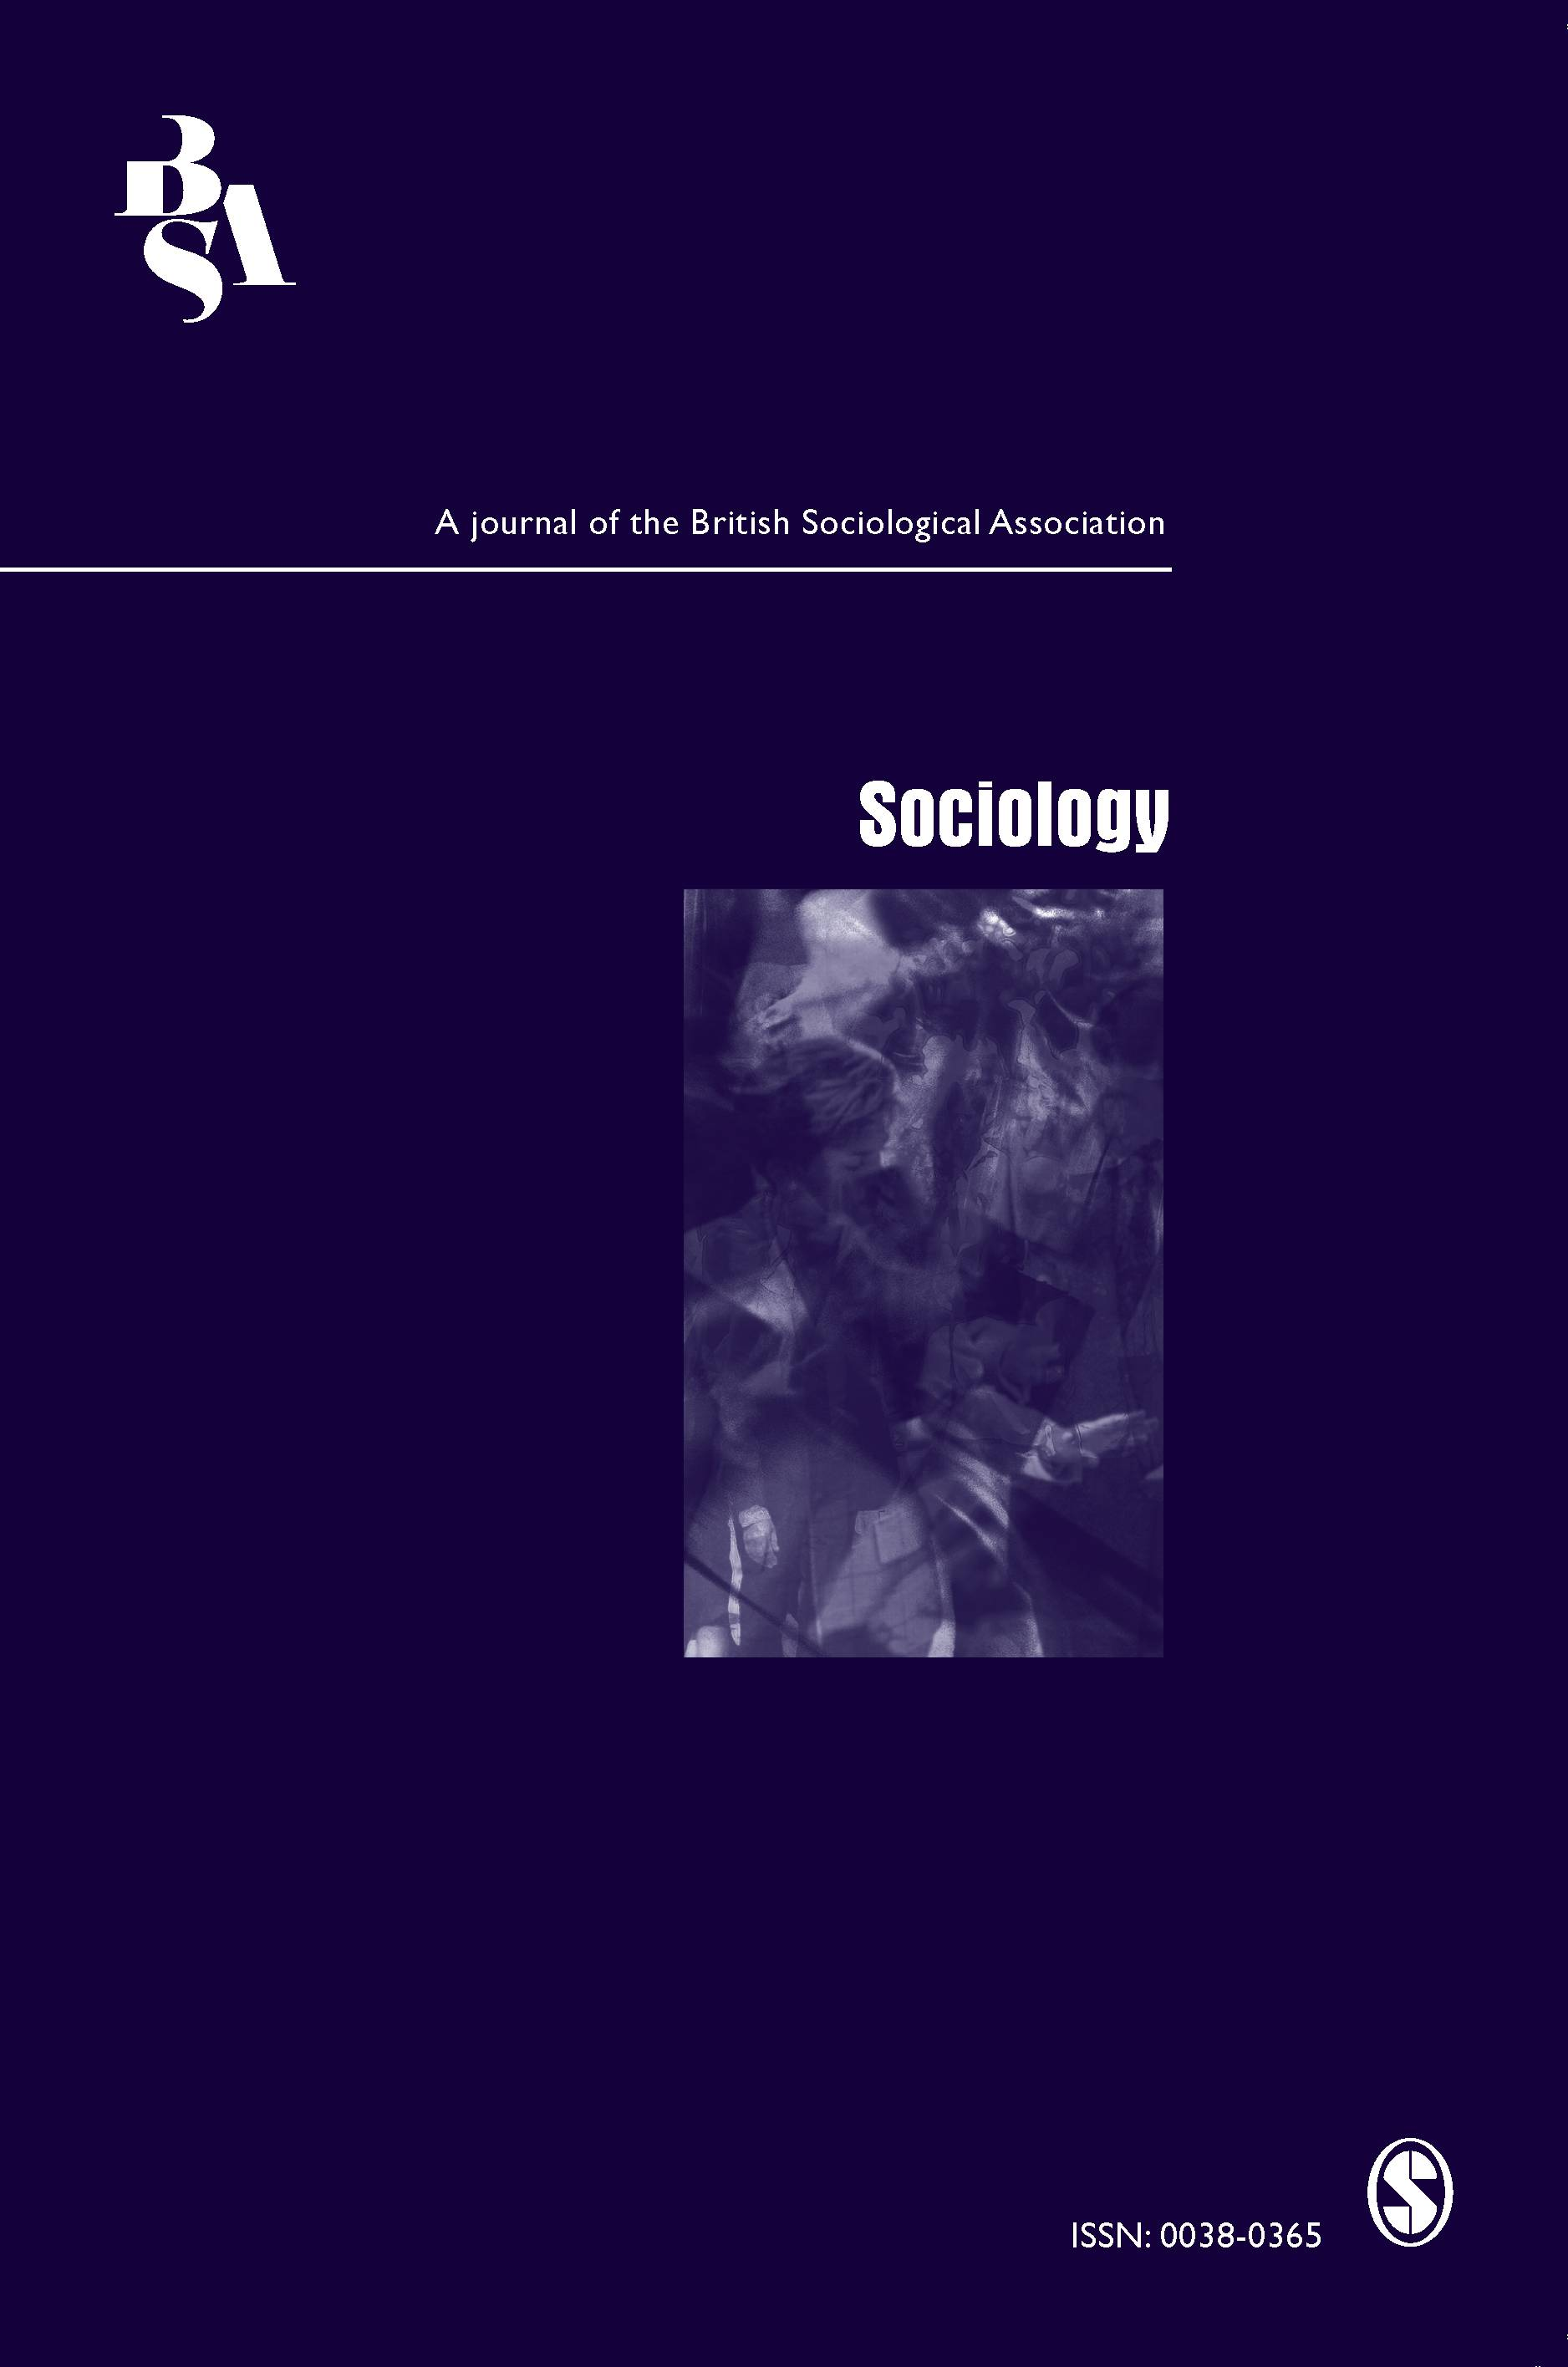 Cover image of the journal Sociology.